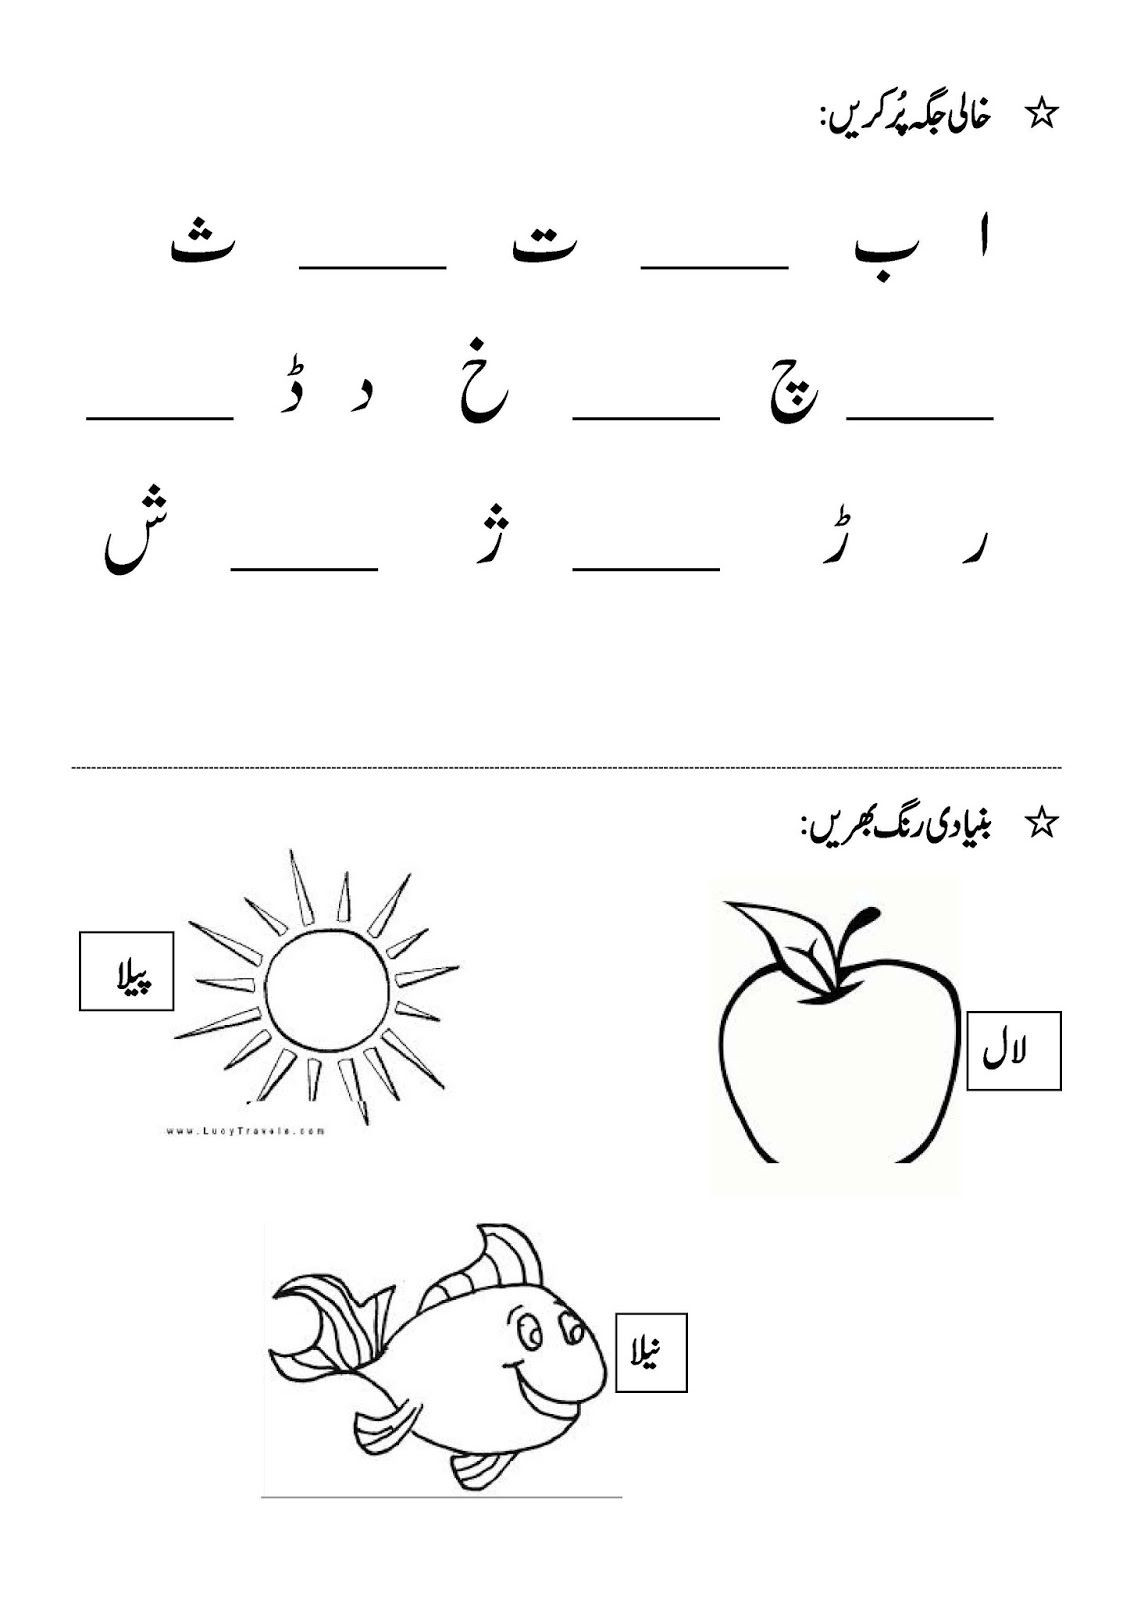 Ou Ow Worksheets 2nd Grade Urdu Alif Worksheet Printable Worksheets and Activities for